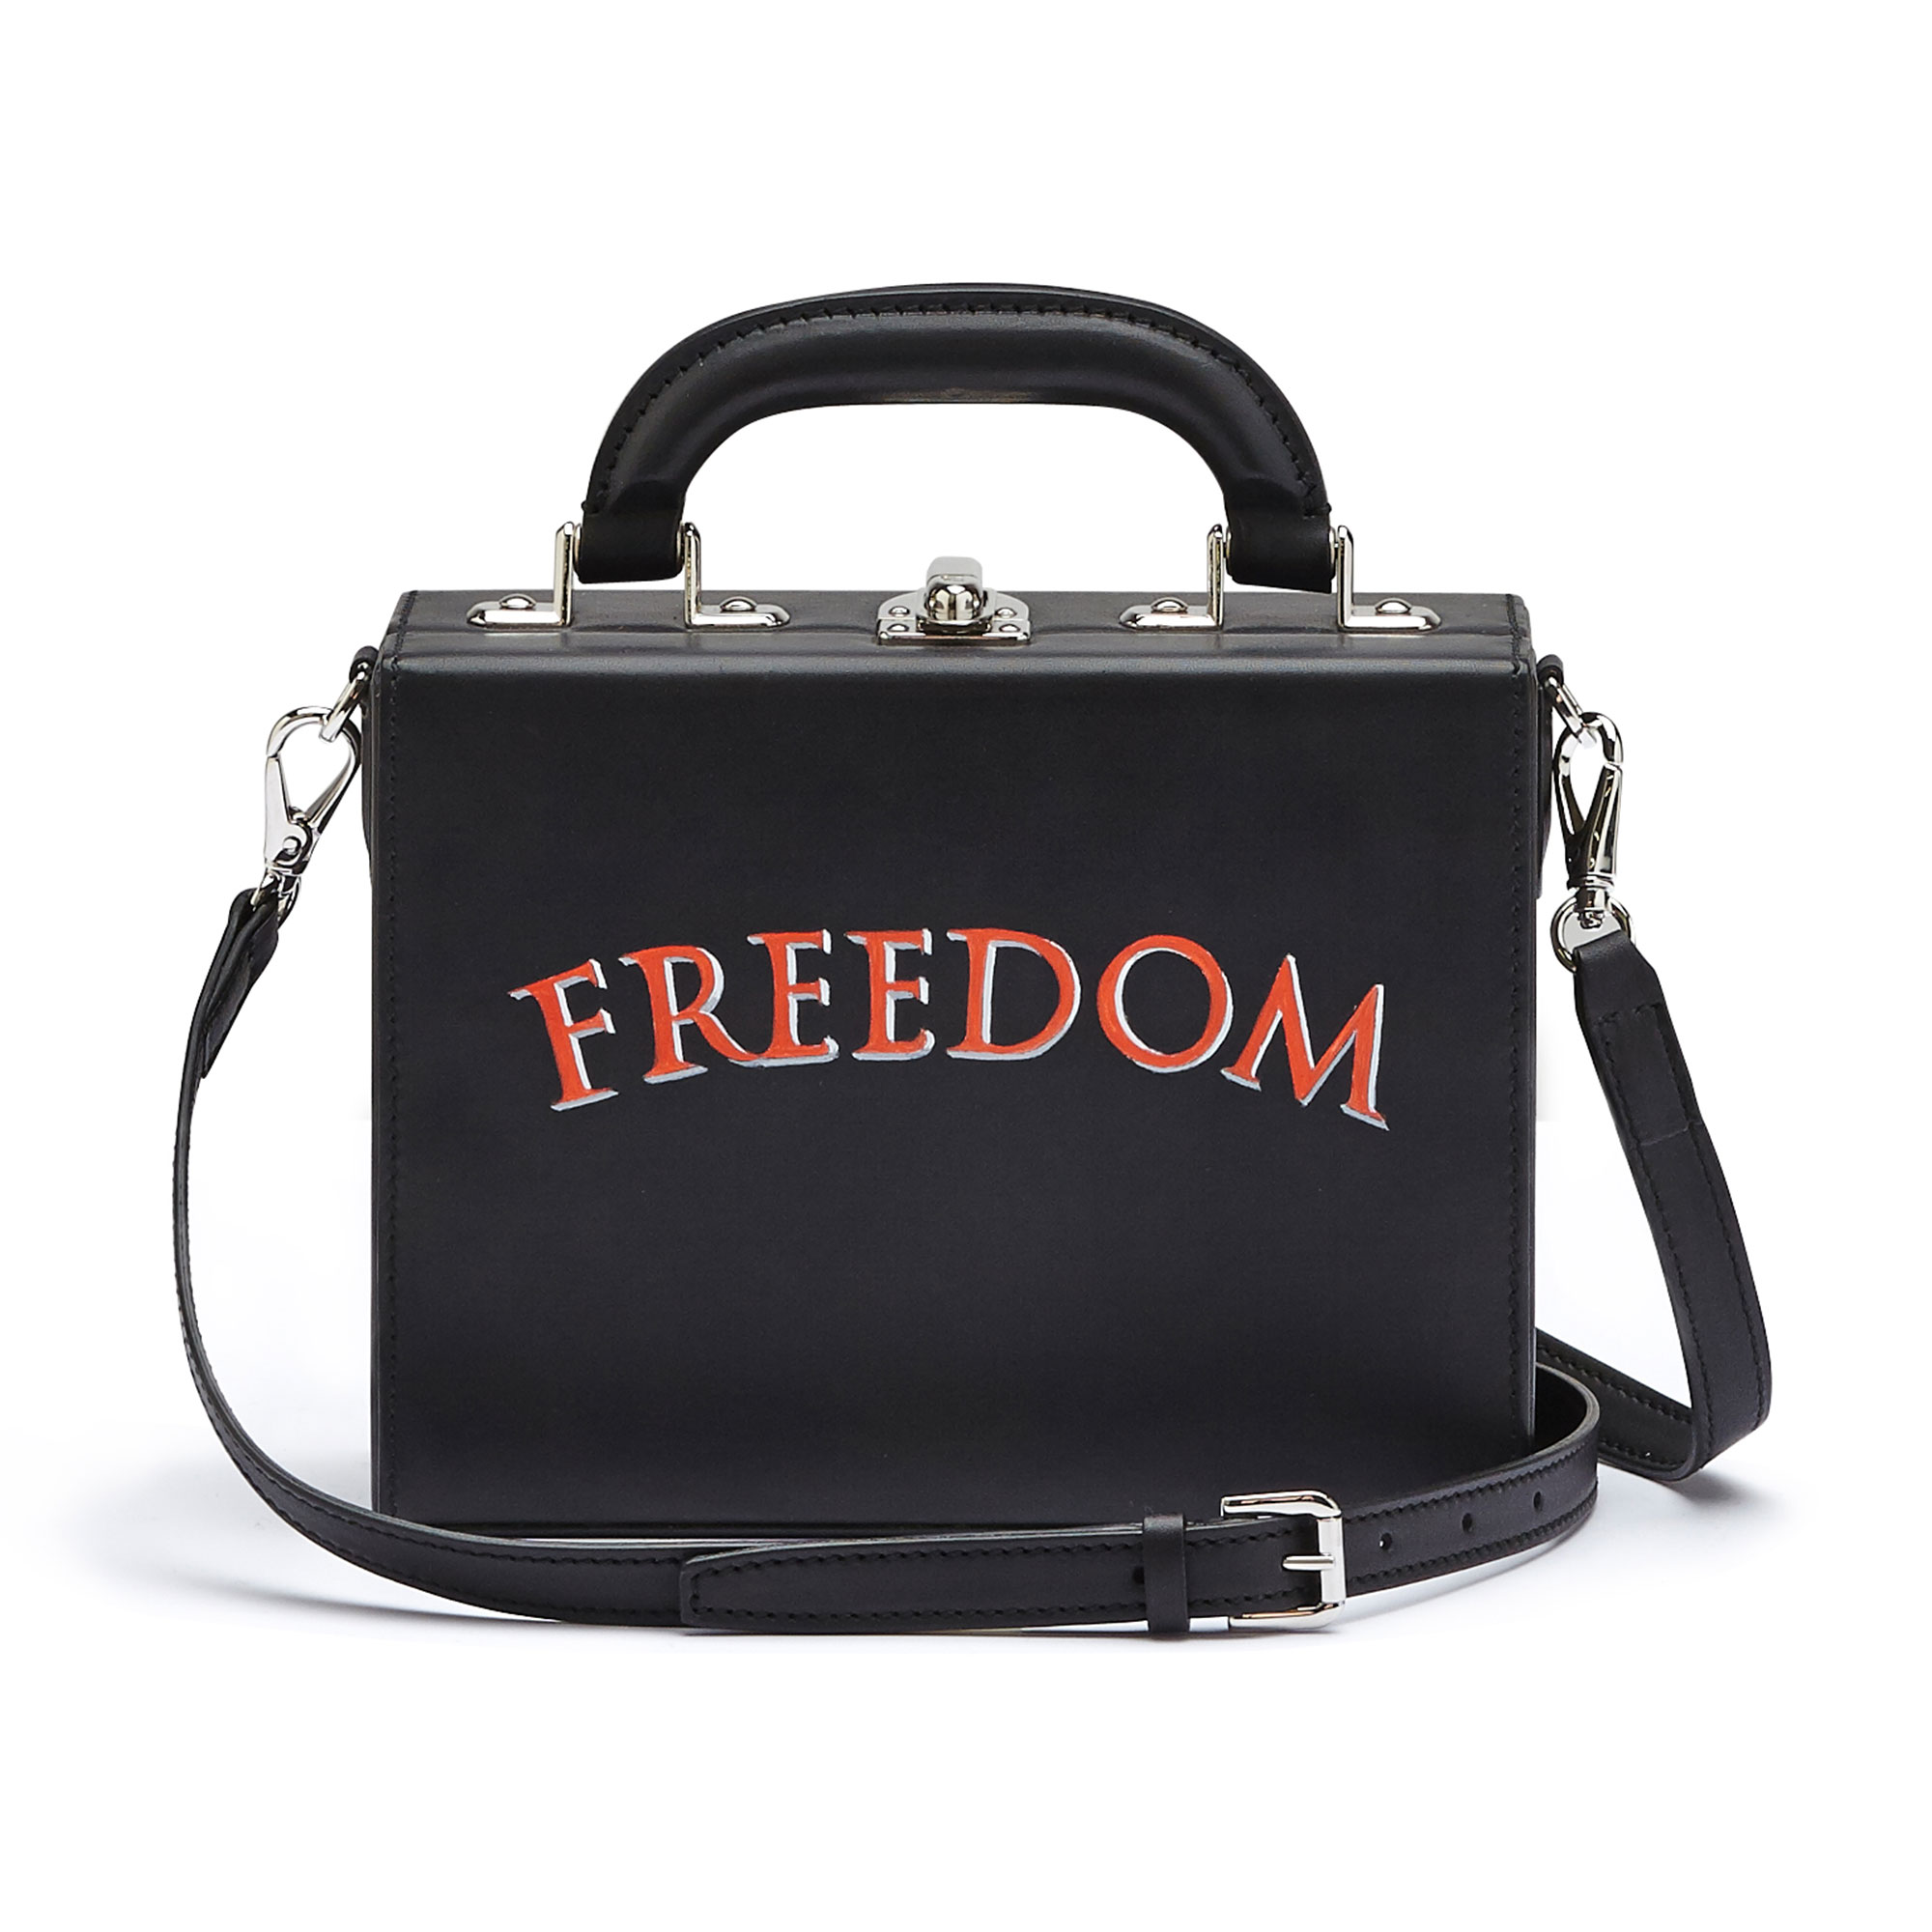 The black with writing freedom french calf Mini Squared Bertoncina bag by Bertoni 1949 03